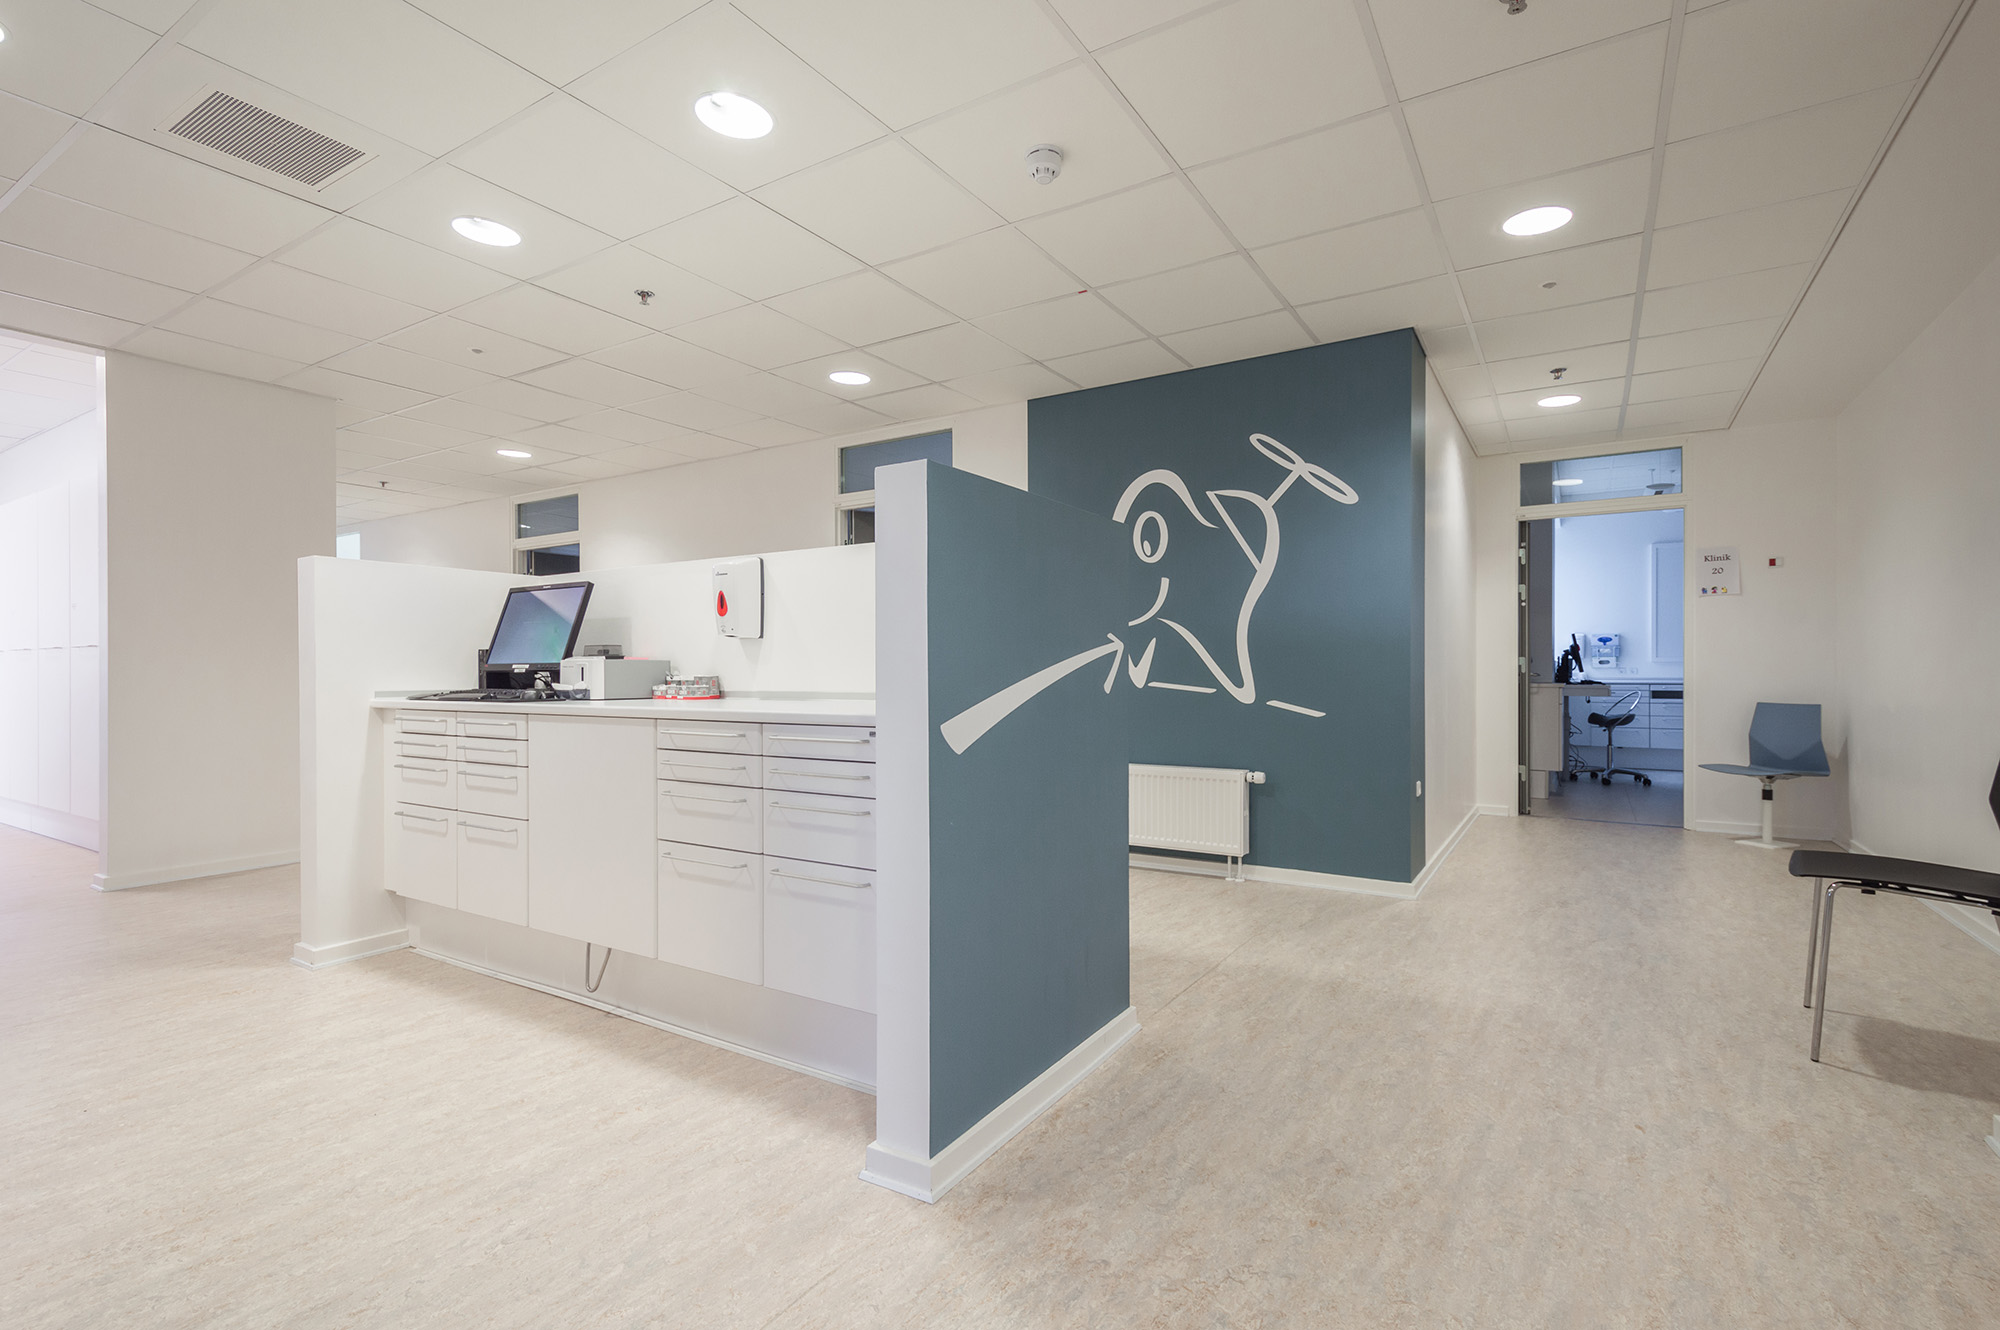 The dental services of Vejle